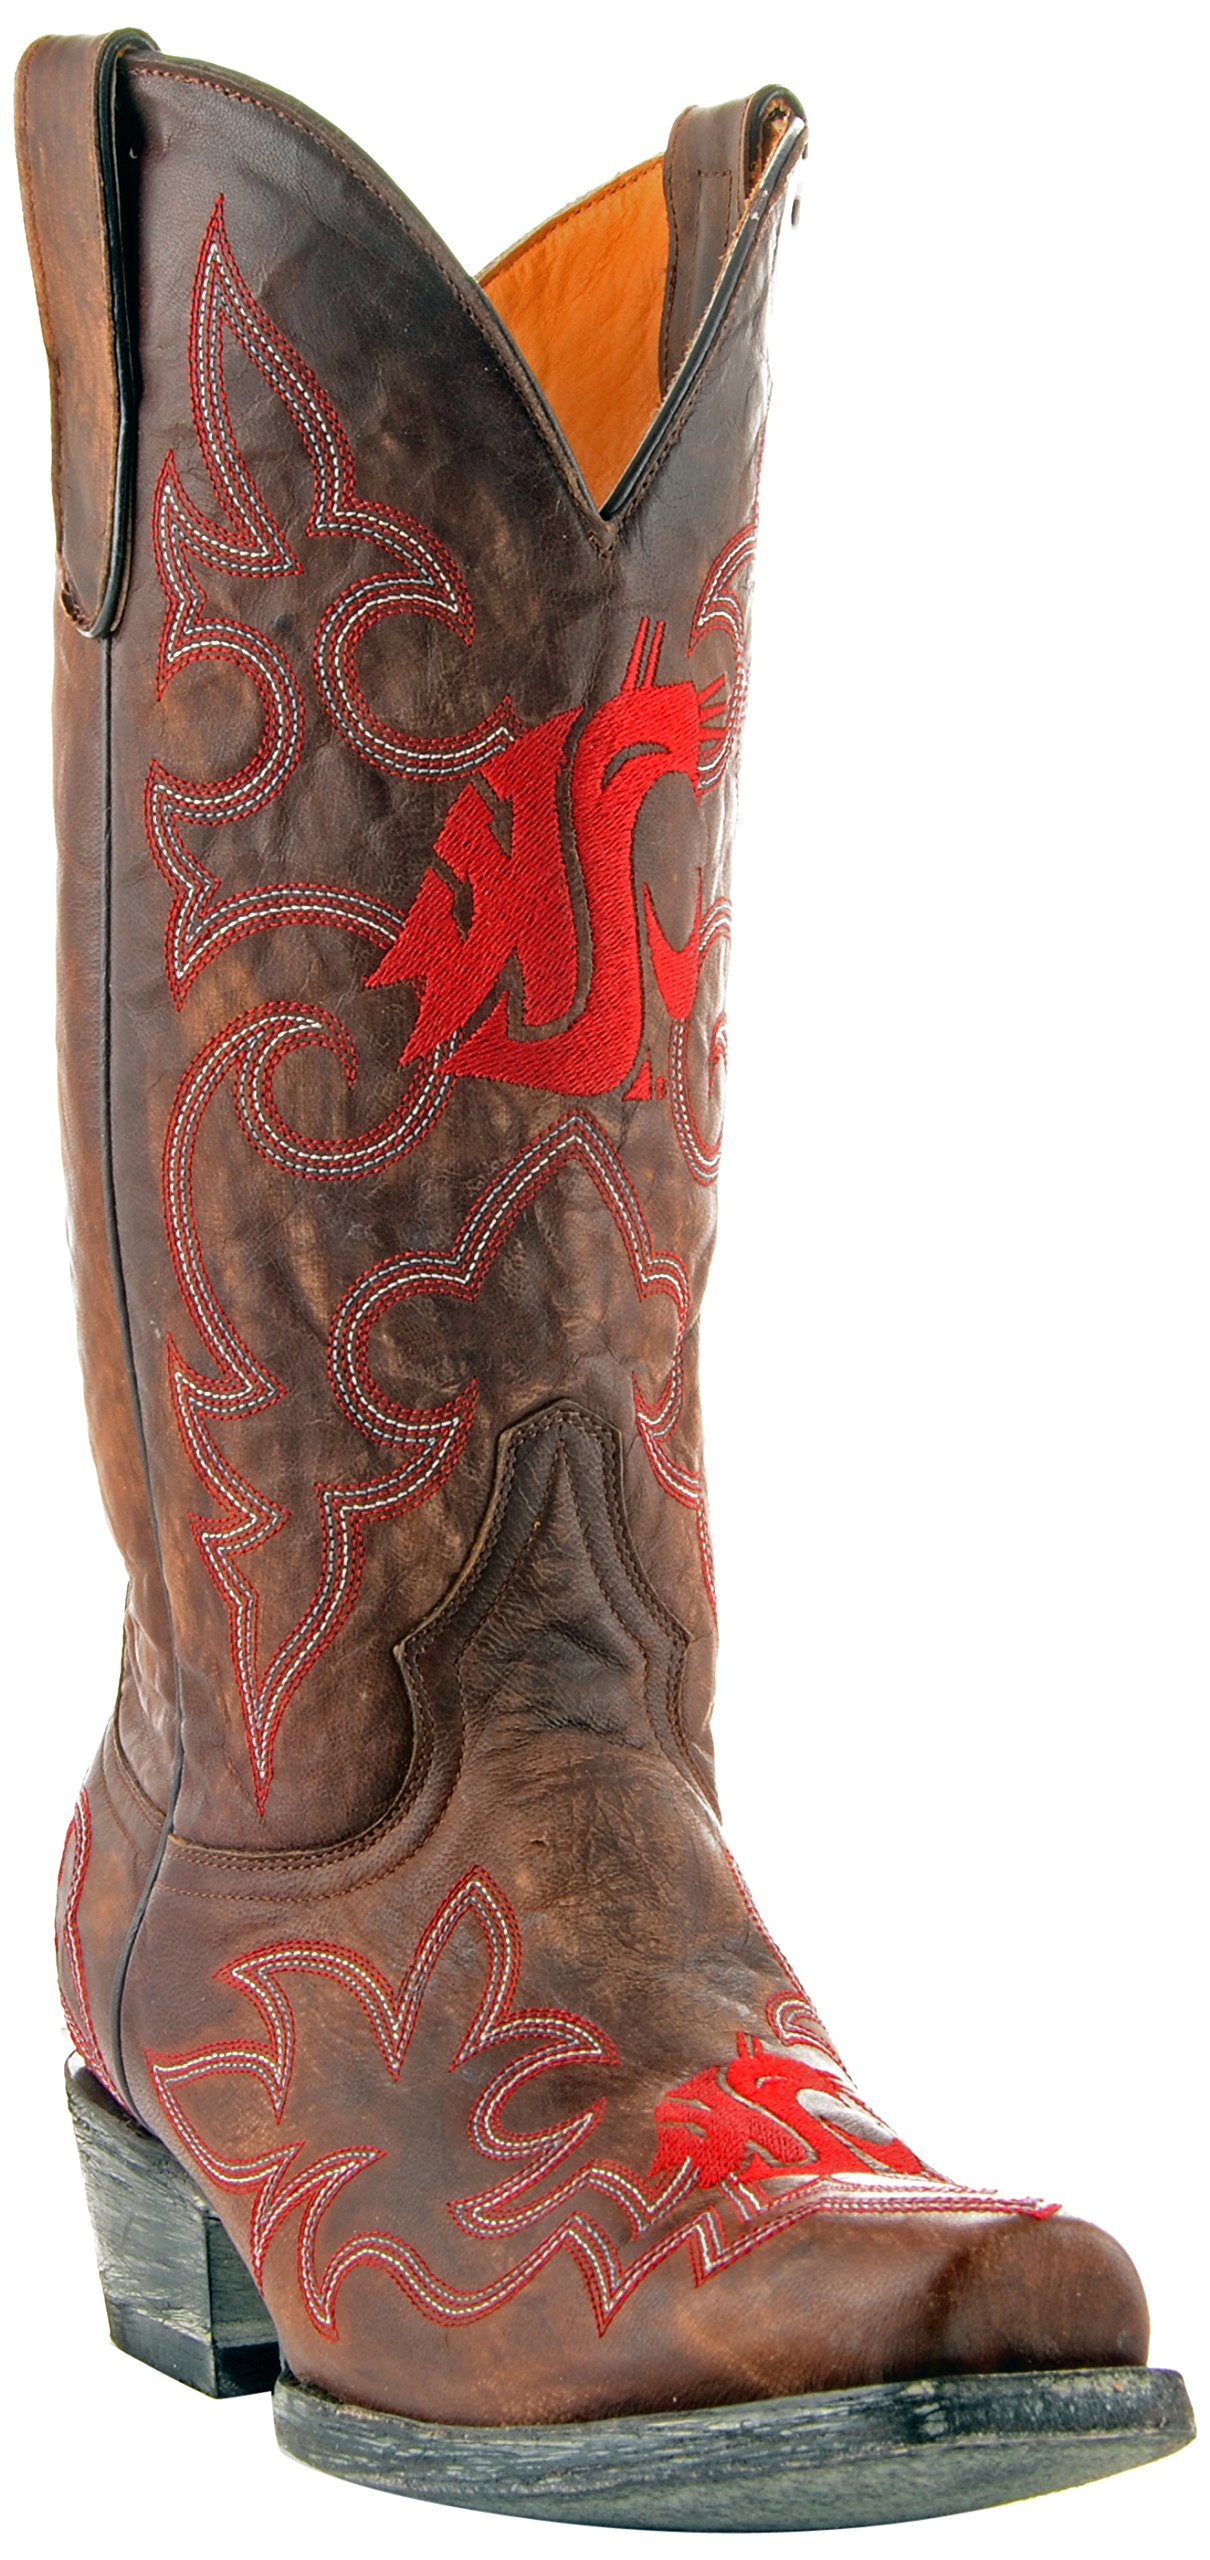 GAMEDAY BOOTS NCAA Washington State Cougars Men's, Brass, 11.5 D (M) US by GAMEDAY BOOTS